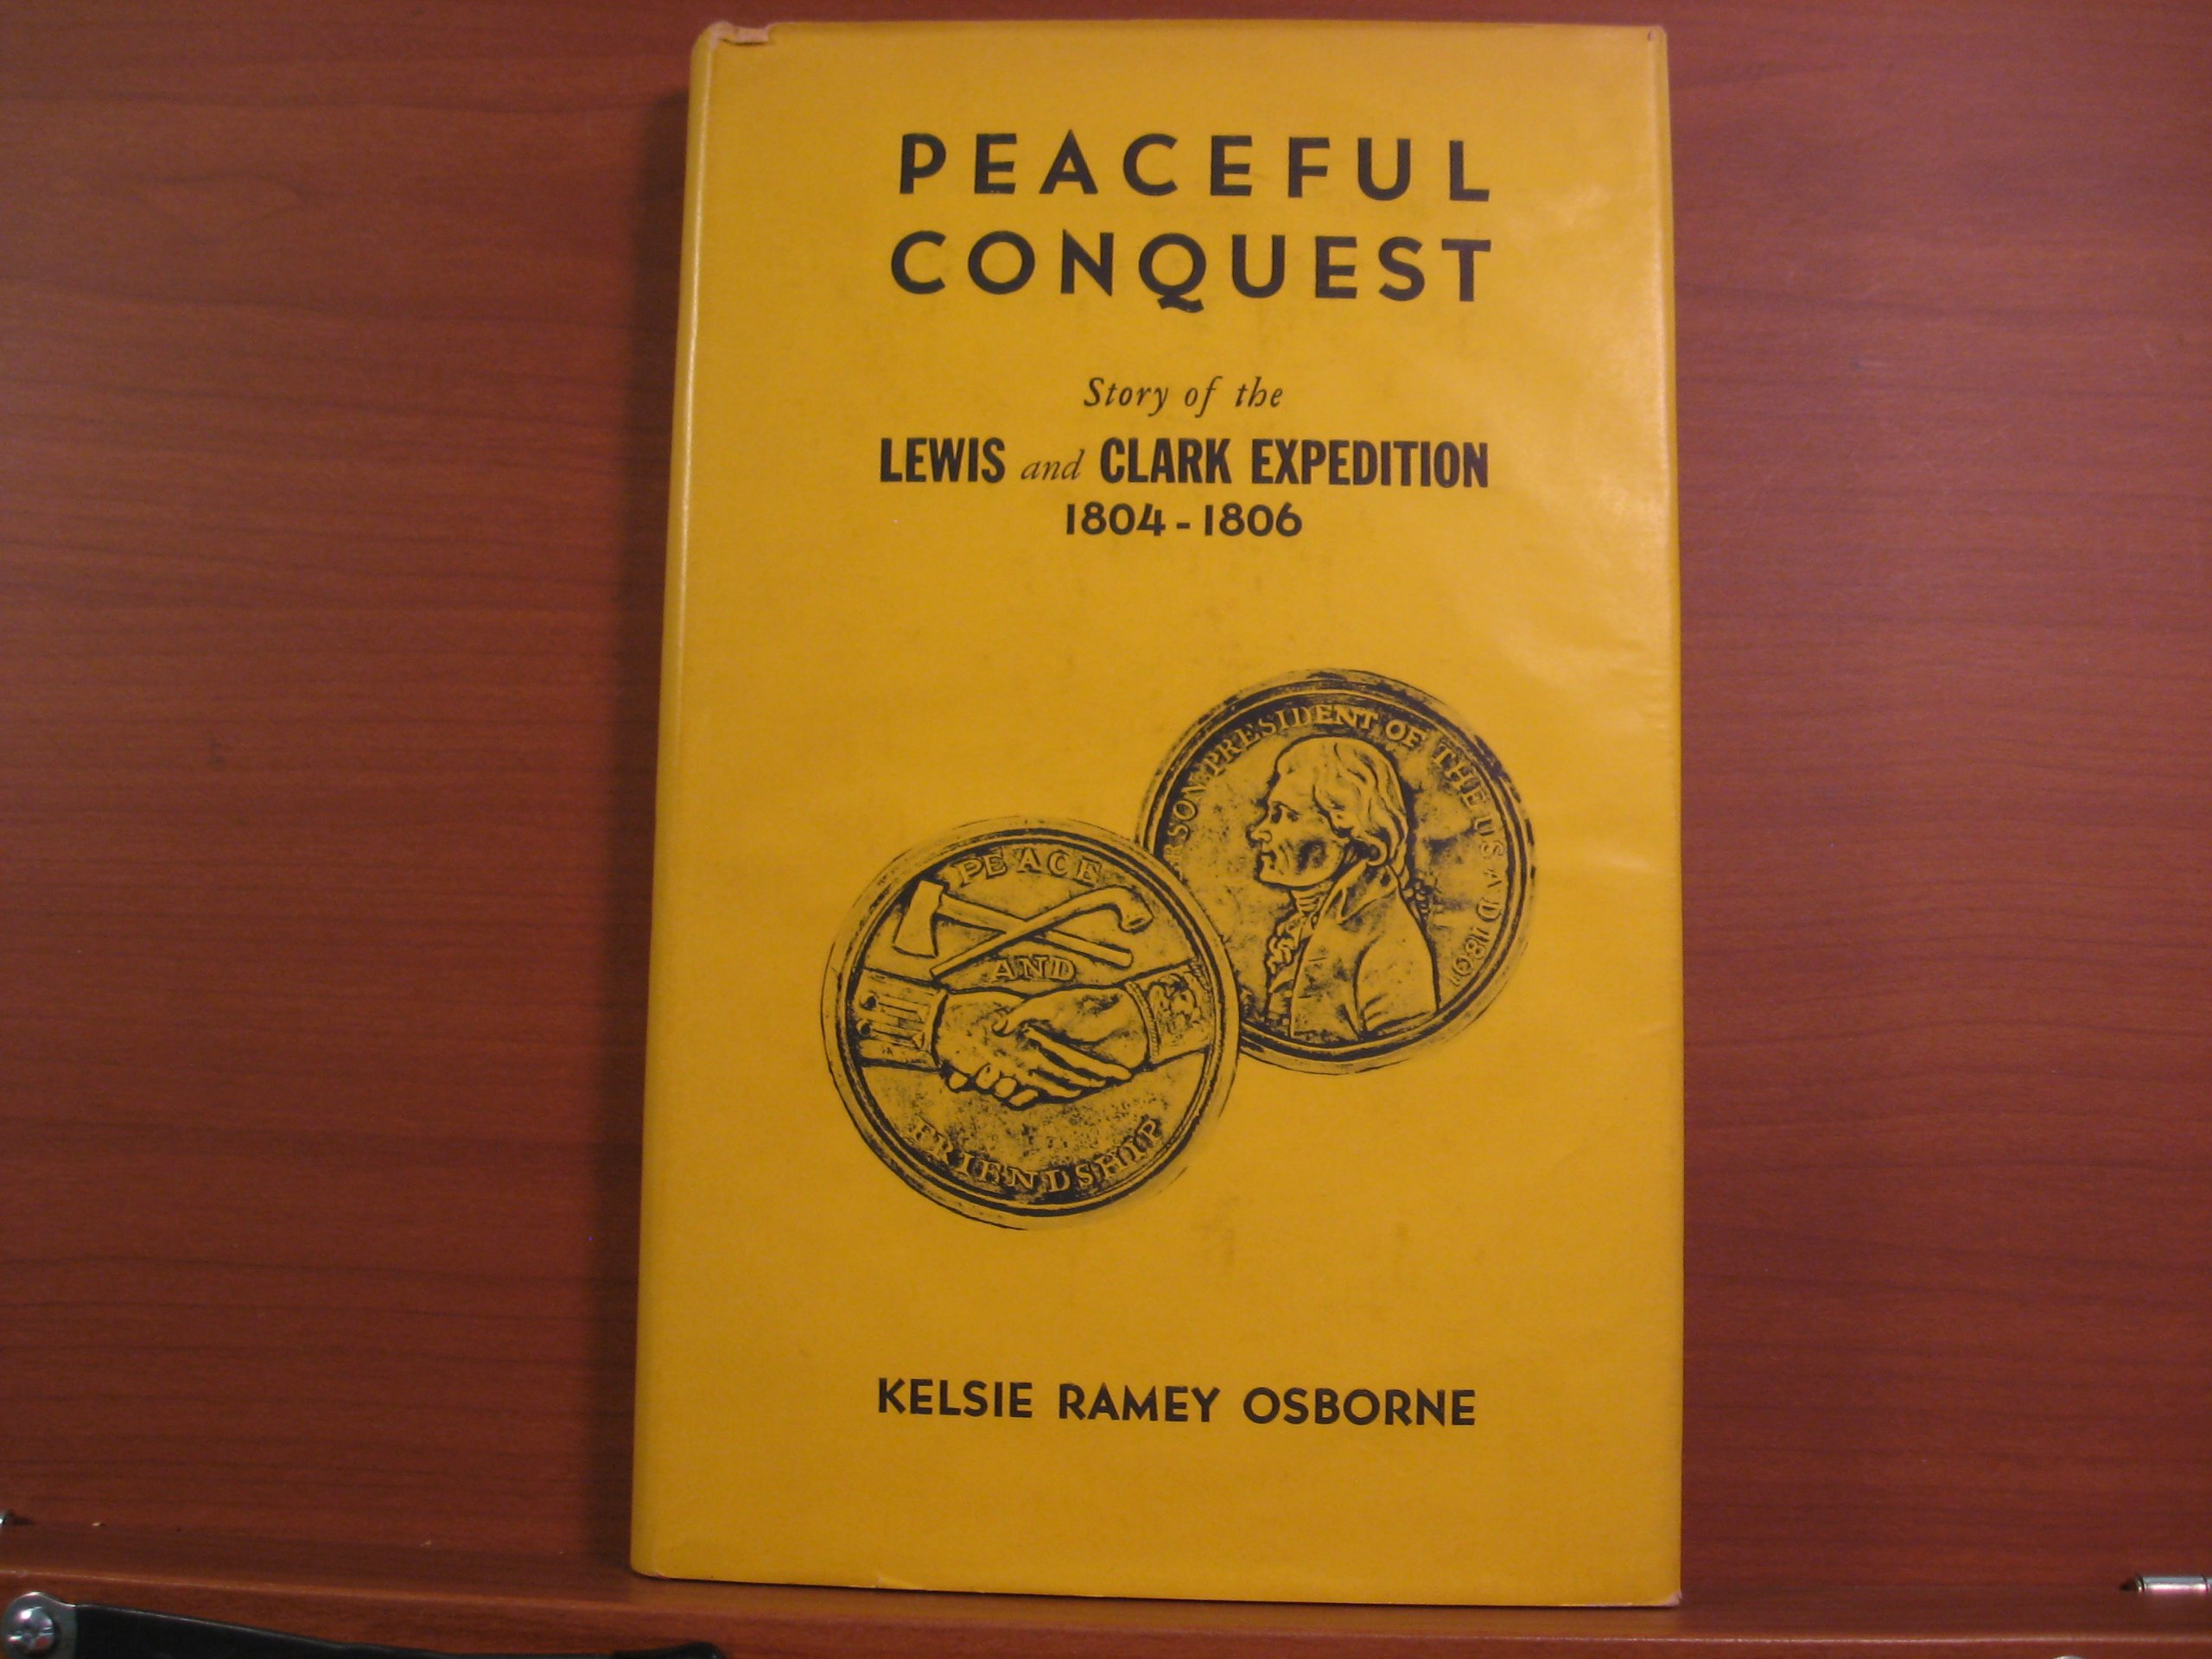 Peaceful Conquest: Story of the Lewis and Clark Expedition 1804-1806, Kelsie Ramey Osborne